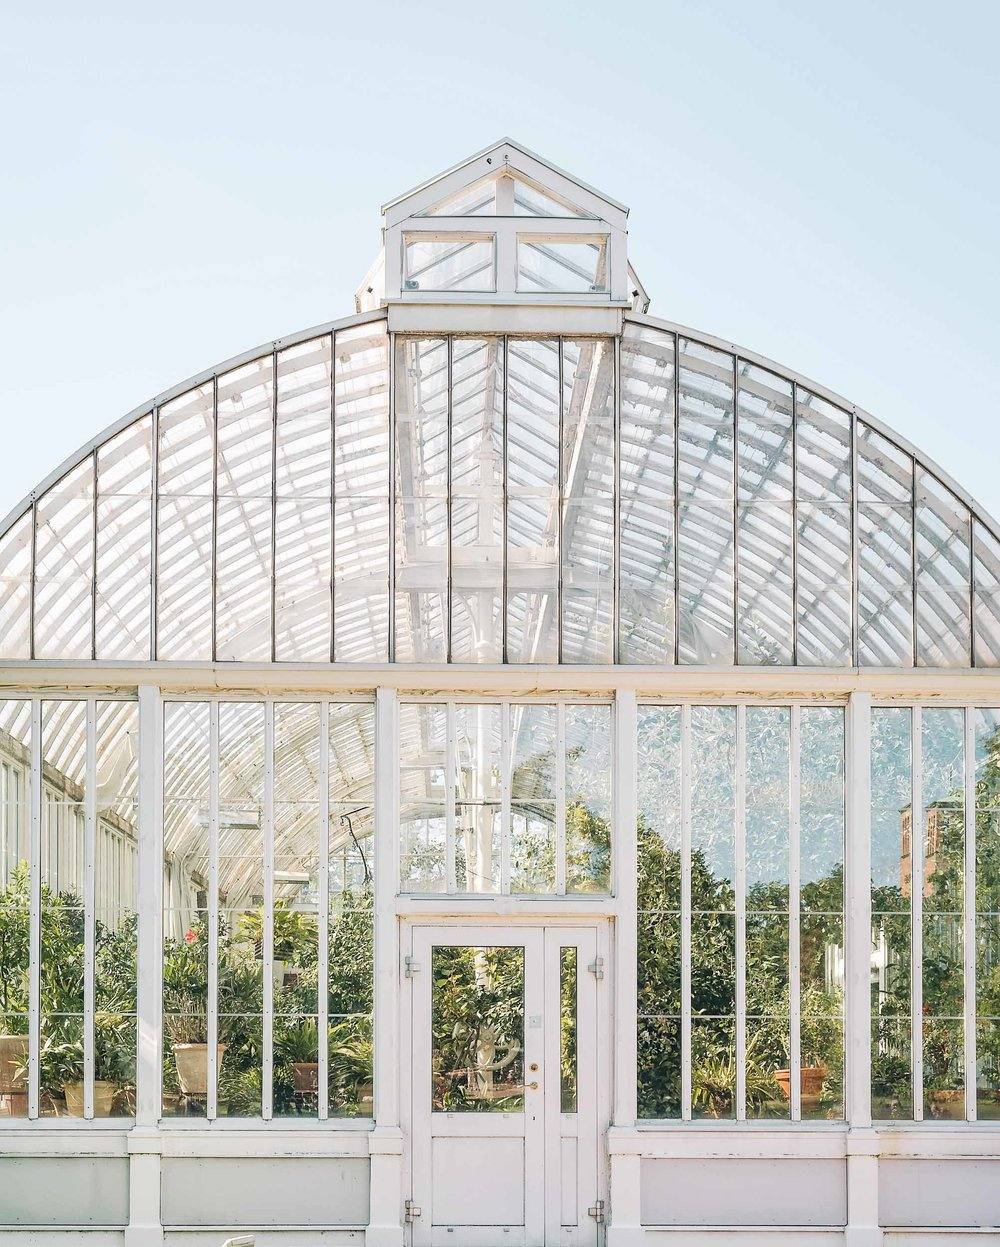 Visit the Palm House at Garden Society of Gothenburg